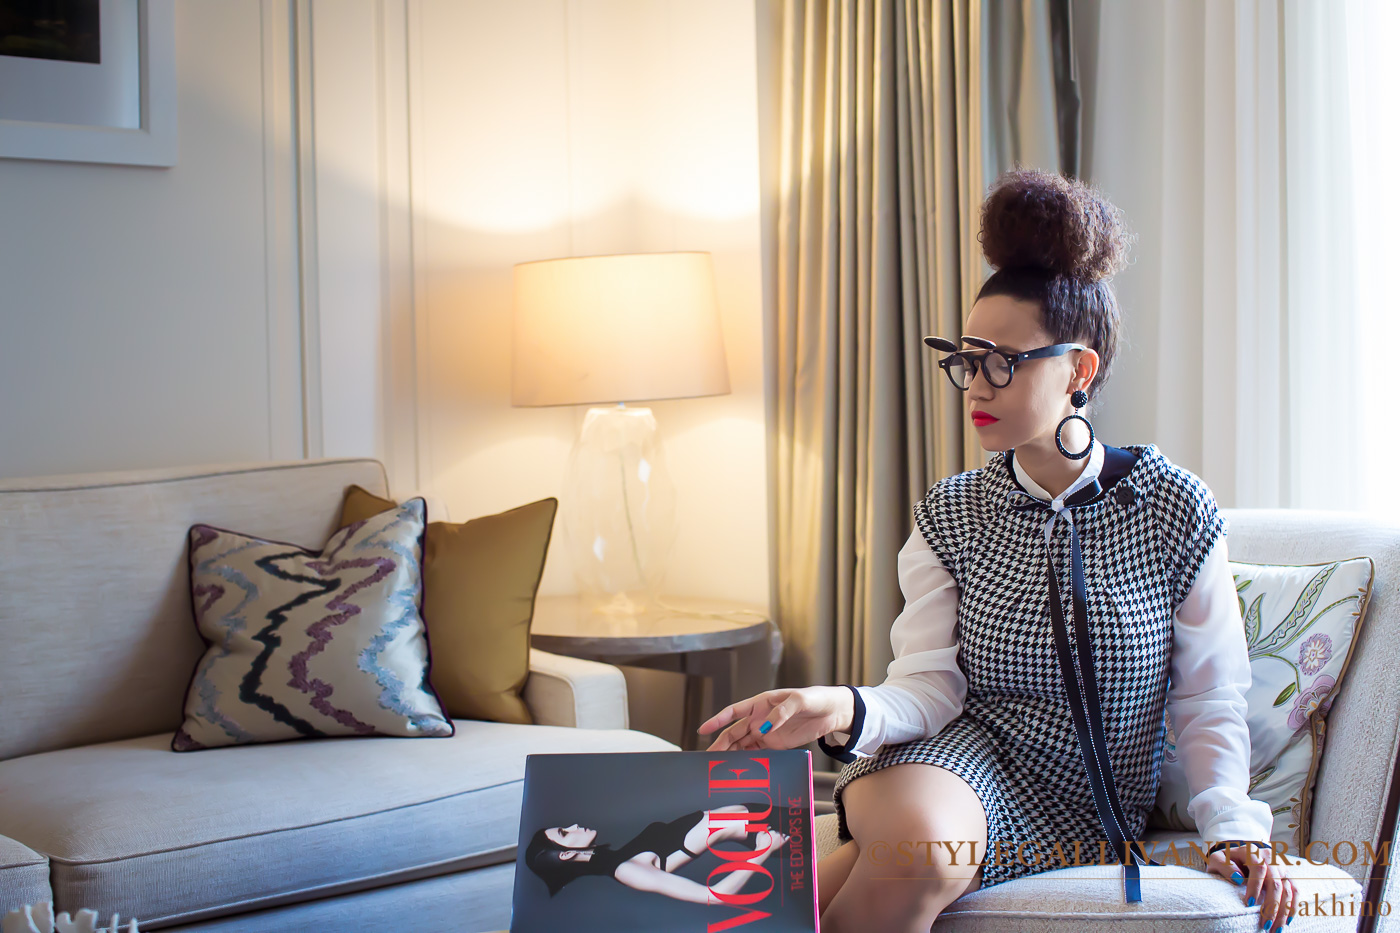 houndstooth-trends-2016_style-gallivanter-2016_top-bloggers-london-2016_liverpool-top-best-fashion-bloggers-2016_top-natural-hair-bloggers-uk-2016_Australian-top-style-bloggers-2016-12